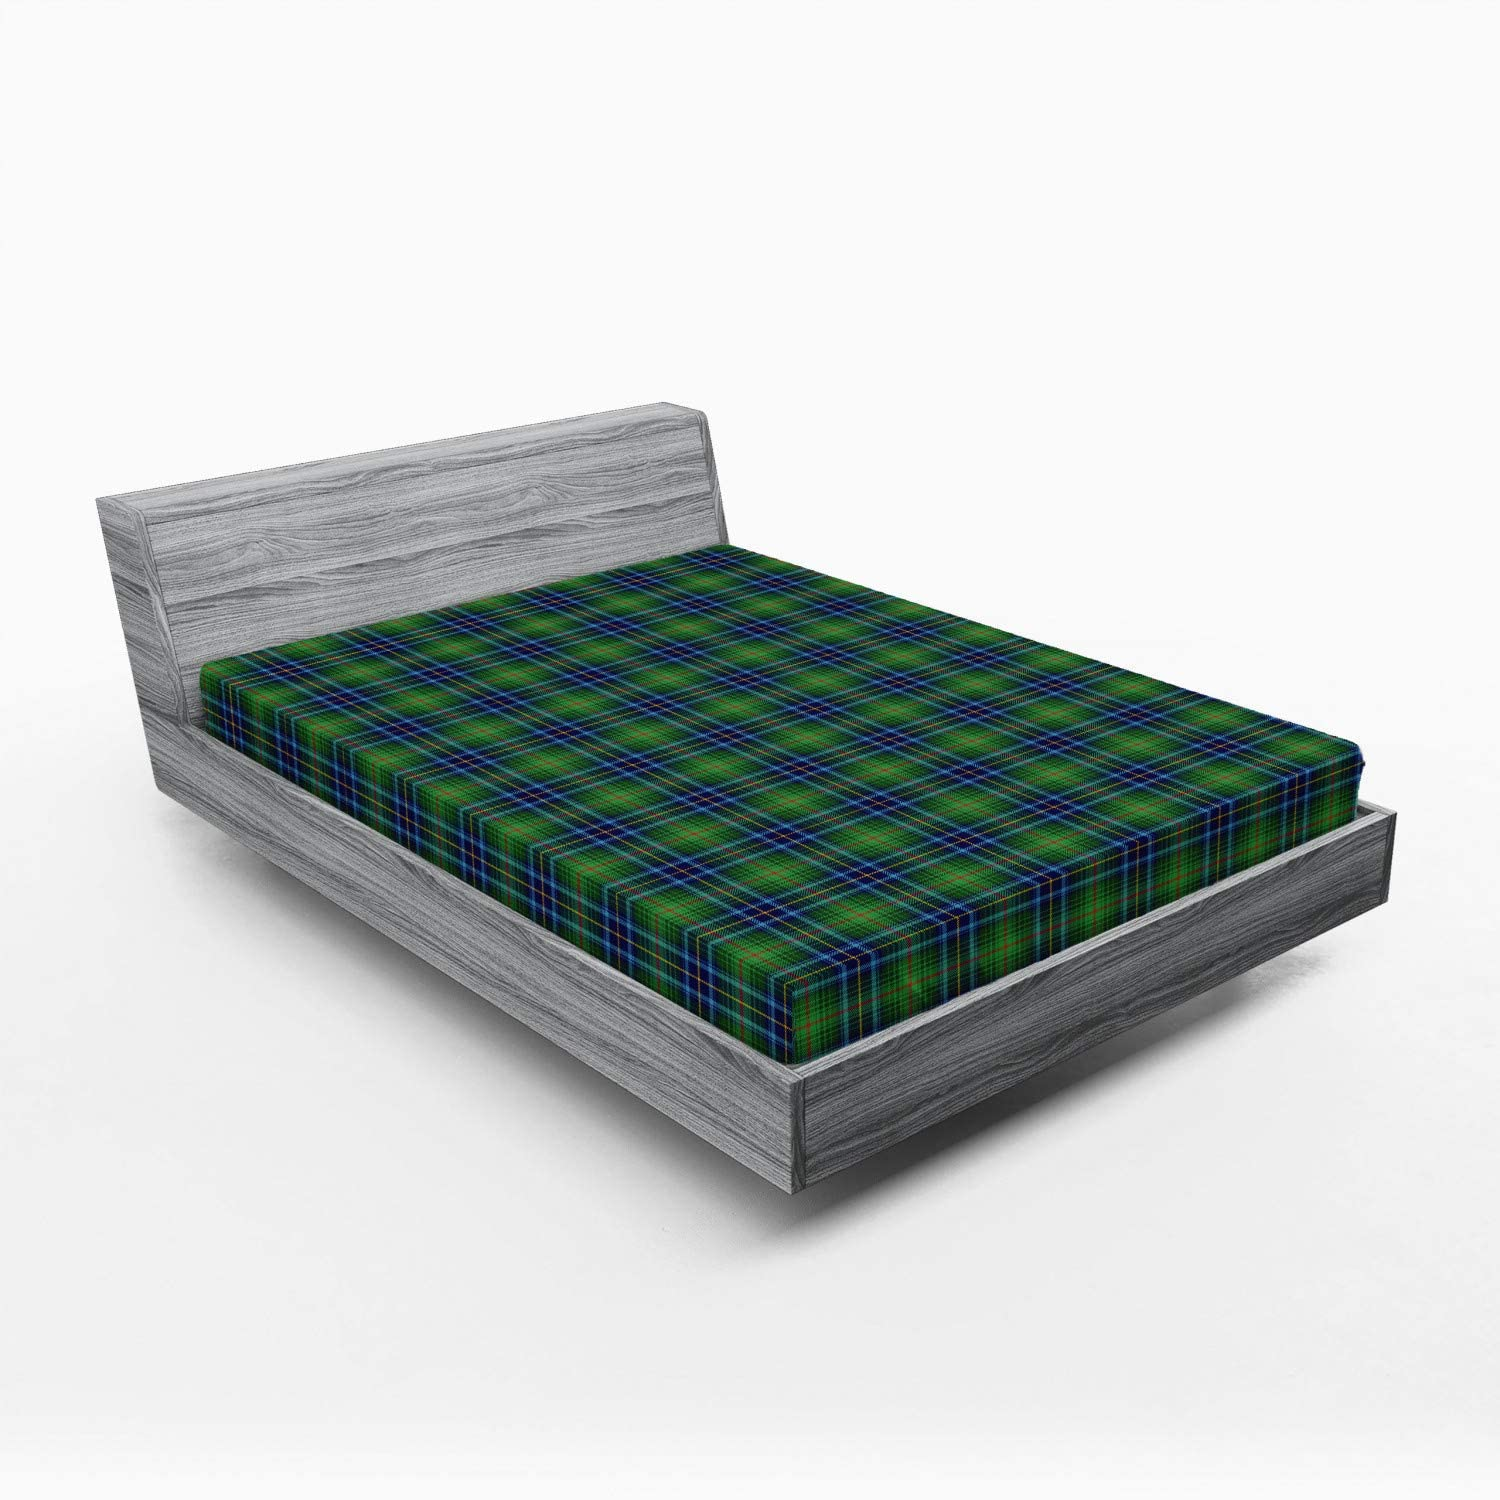 Bargain sale Ambesonne Plaid Fitted Sheet Grunge Looking Sco New products, world's highest quality popular! Vibrant Colored